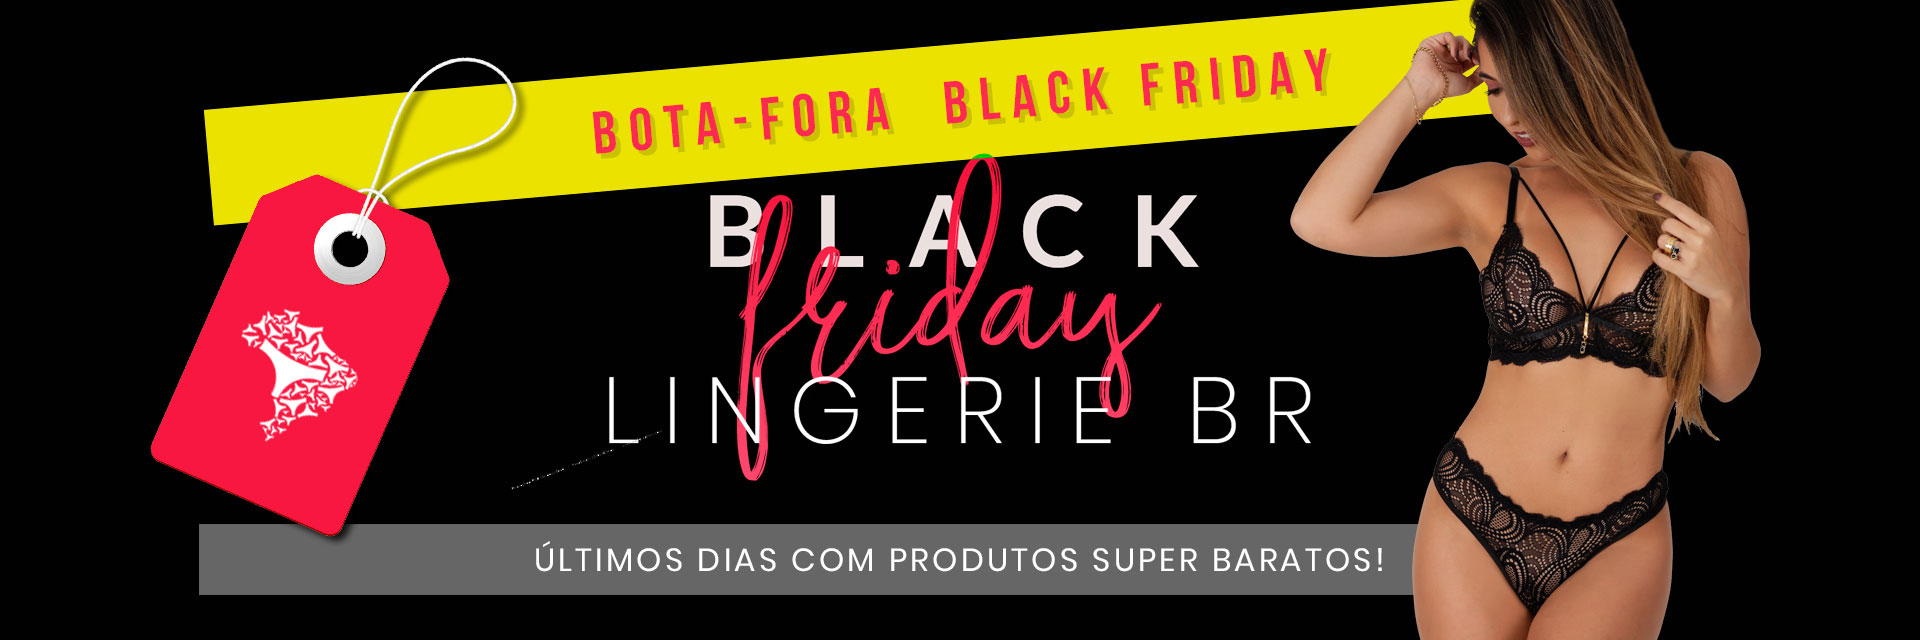 Bota-fora Black Friday